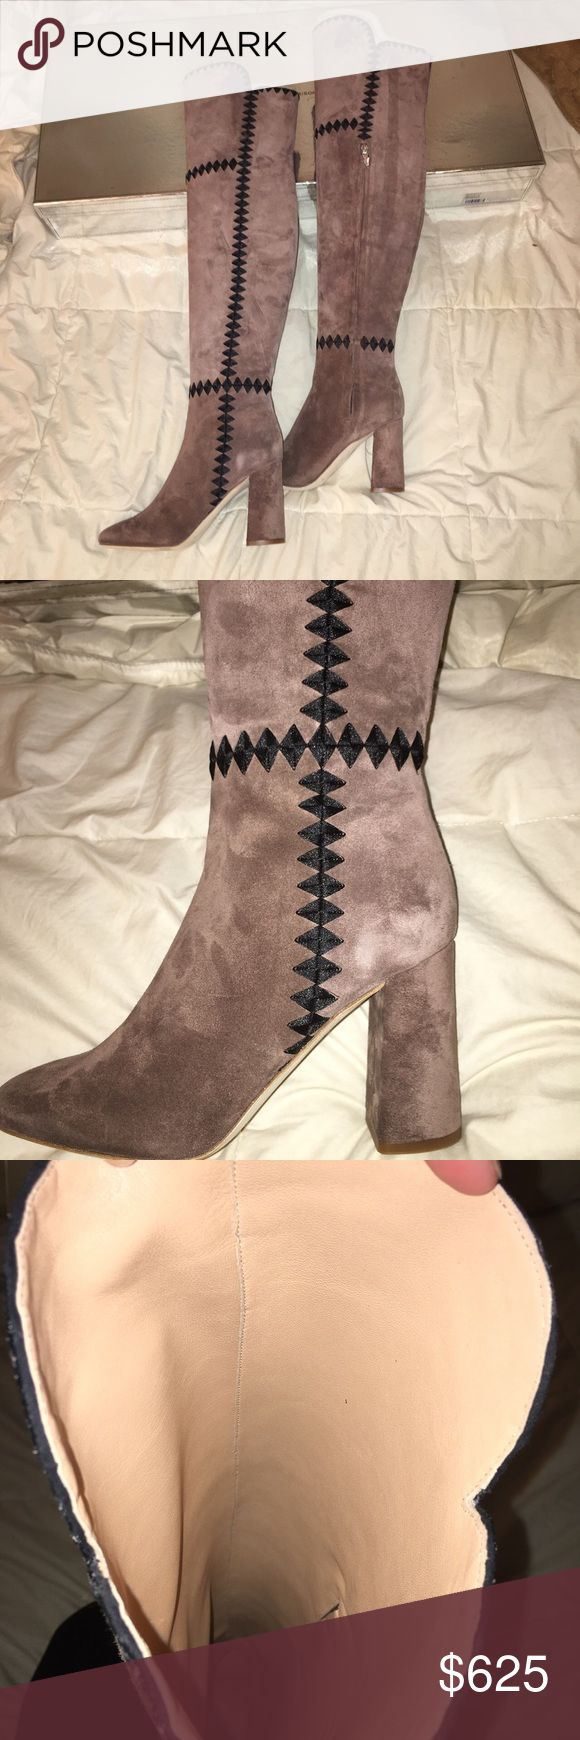 SOLD OUT Free People thigh high suede boots Thigh high tan/grey suede thigh high boots, sold out online at Free People in this color and originally/ currently retailed for $795. There is a black embroidered cross stitching up sides of seams and tan canvas lining on the interior of the boots. This is a well made heel, unworn and still packaged in original box. #freepeople #sigersonmorrison #urbanoutfitters #flynnskye #chanel #heels MAKE OFFERS Sigerson Morrison Shoes Over the Knee Boots